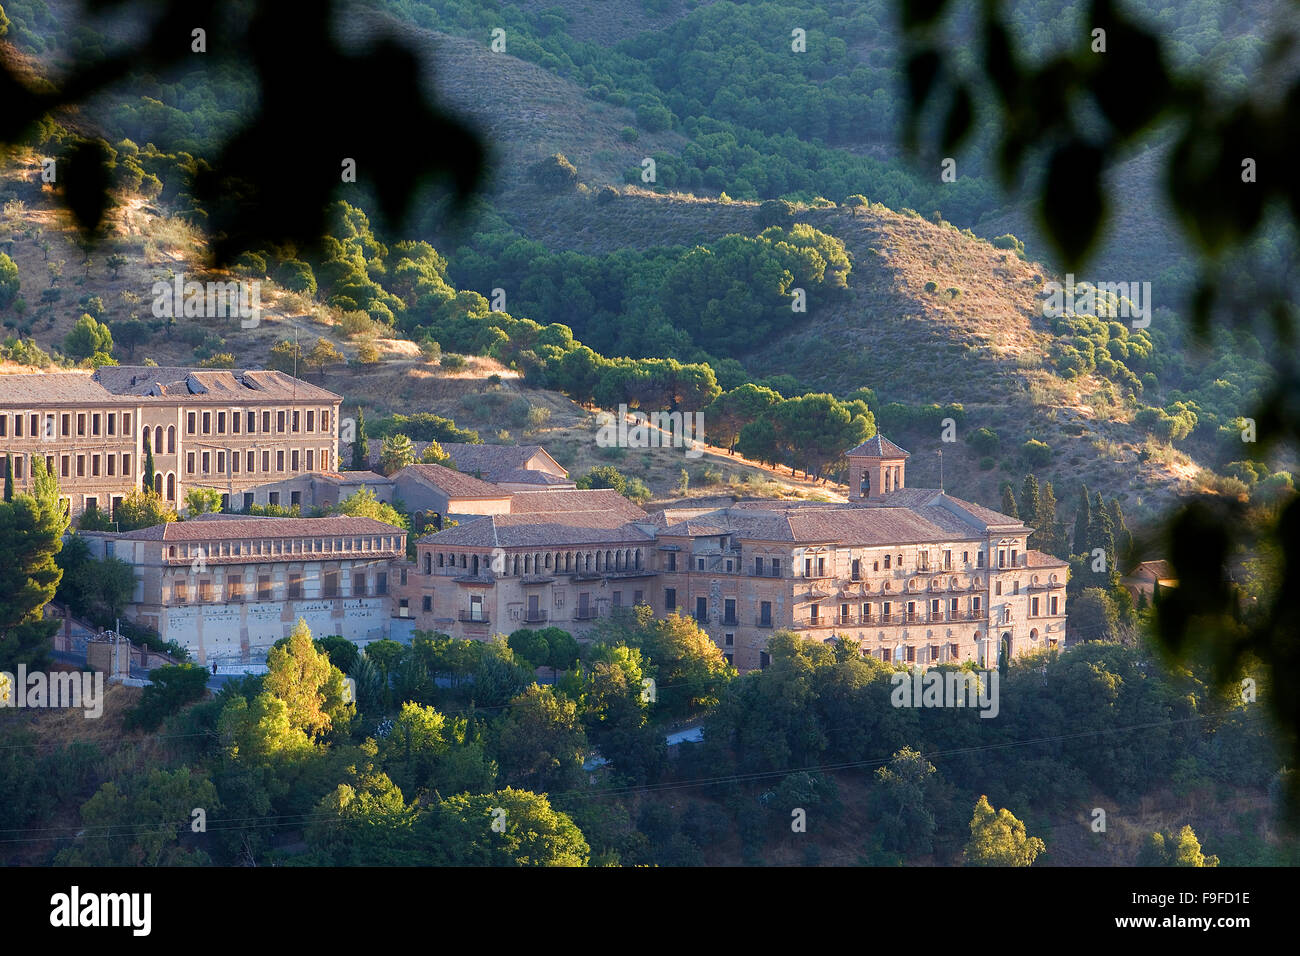 Geography Travel Spain Granada City Stock Photos & Geography